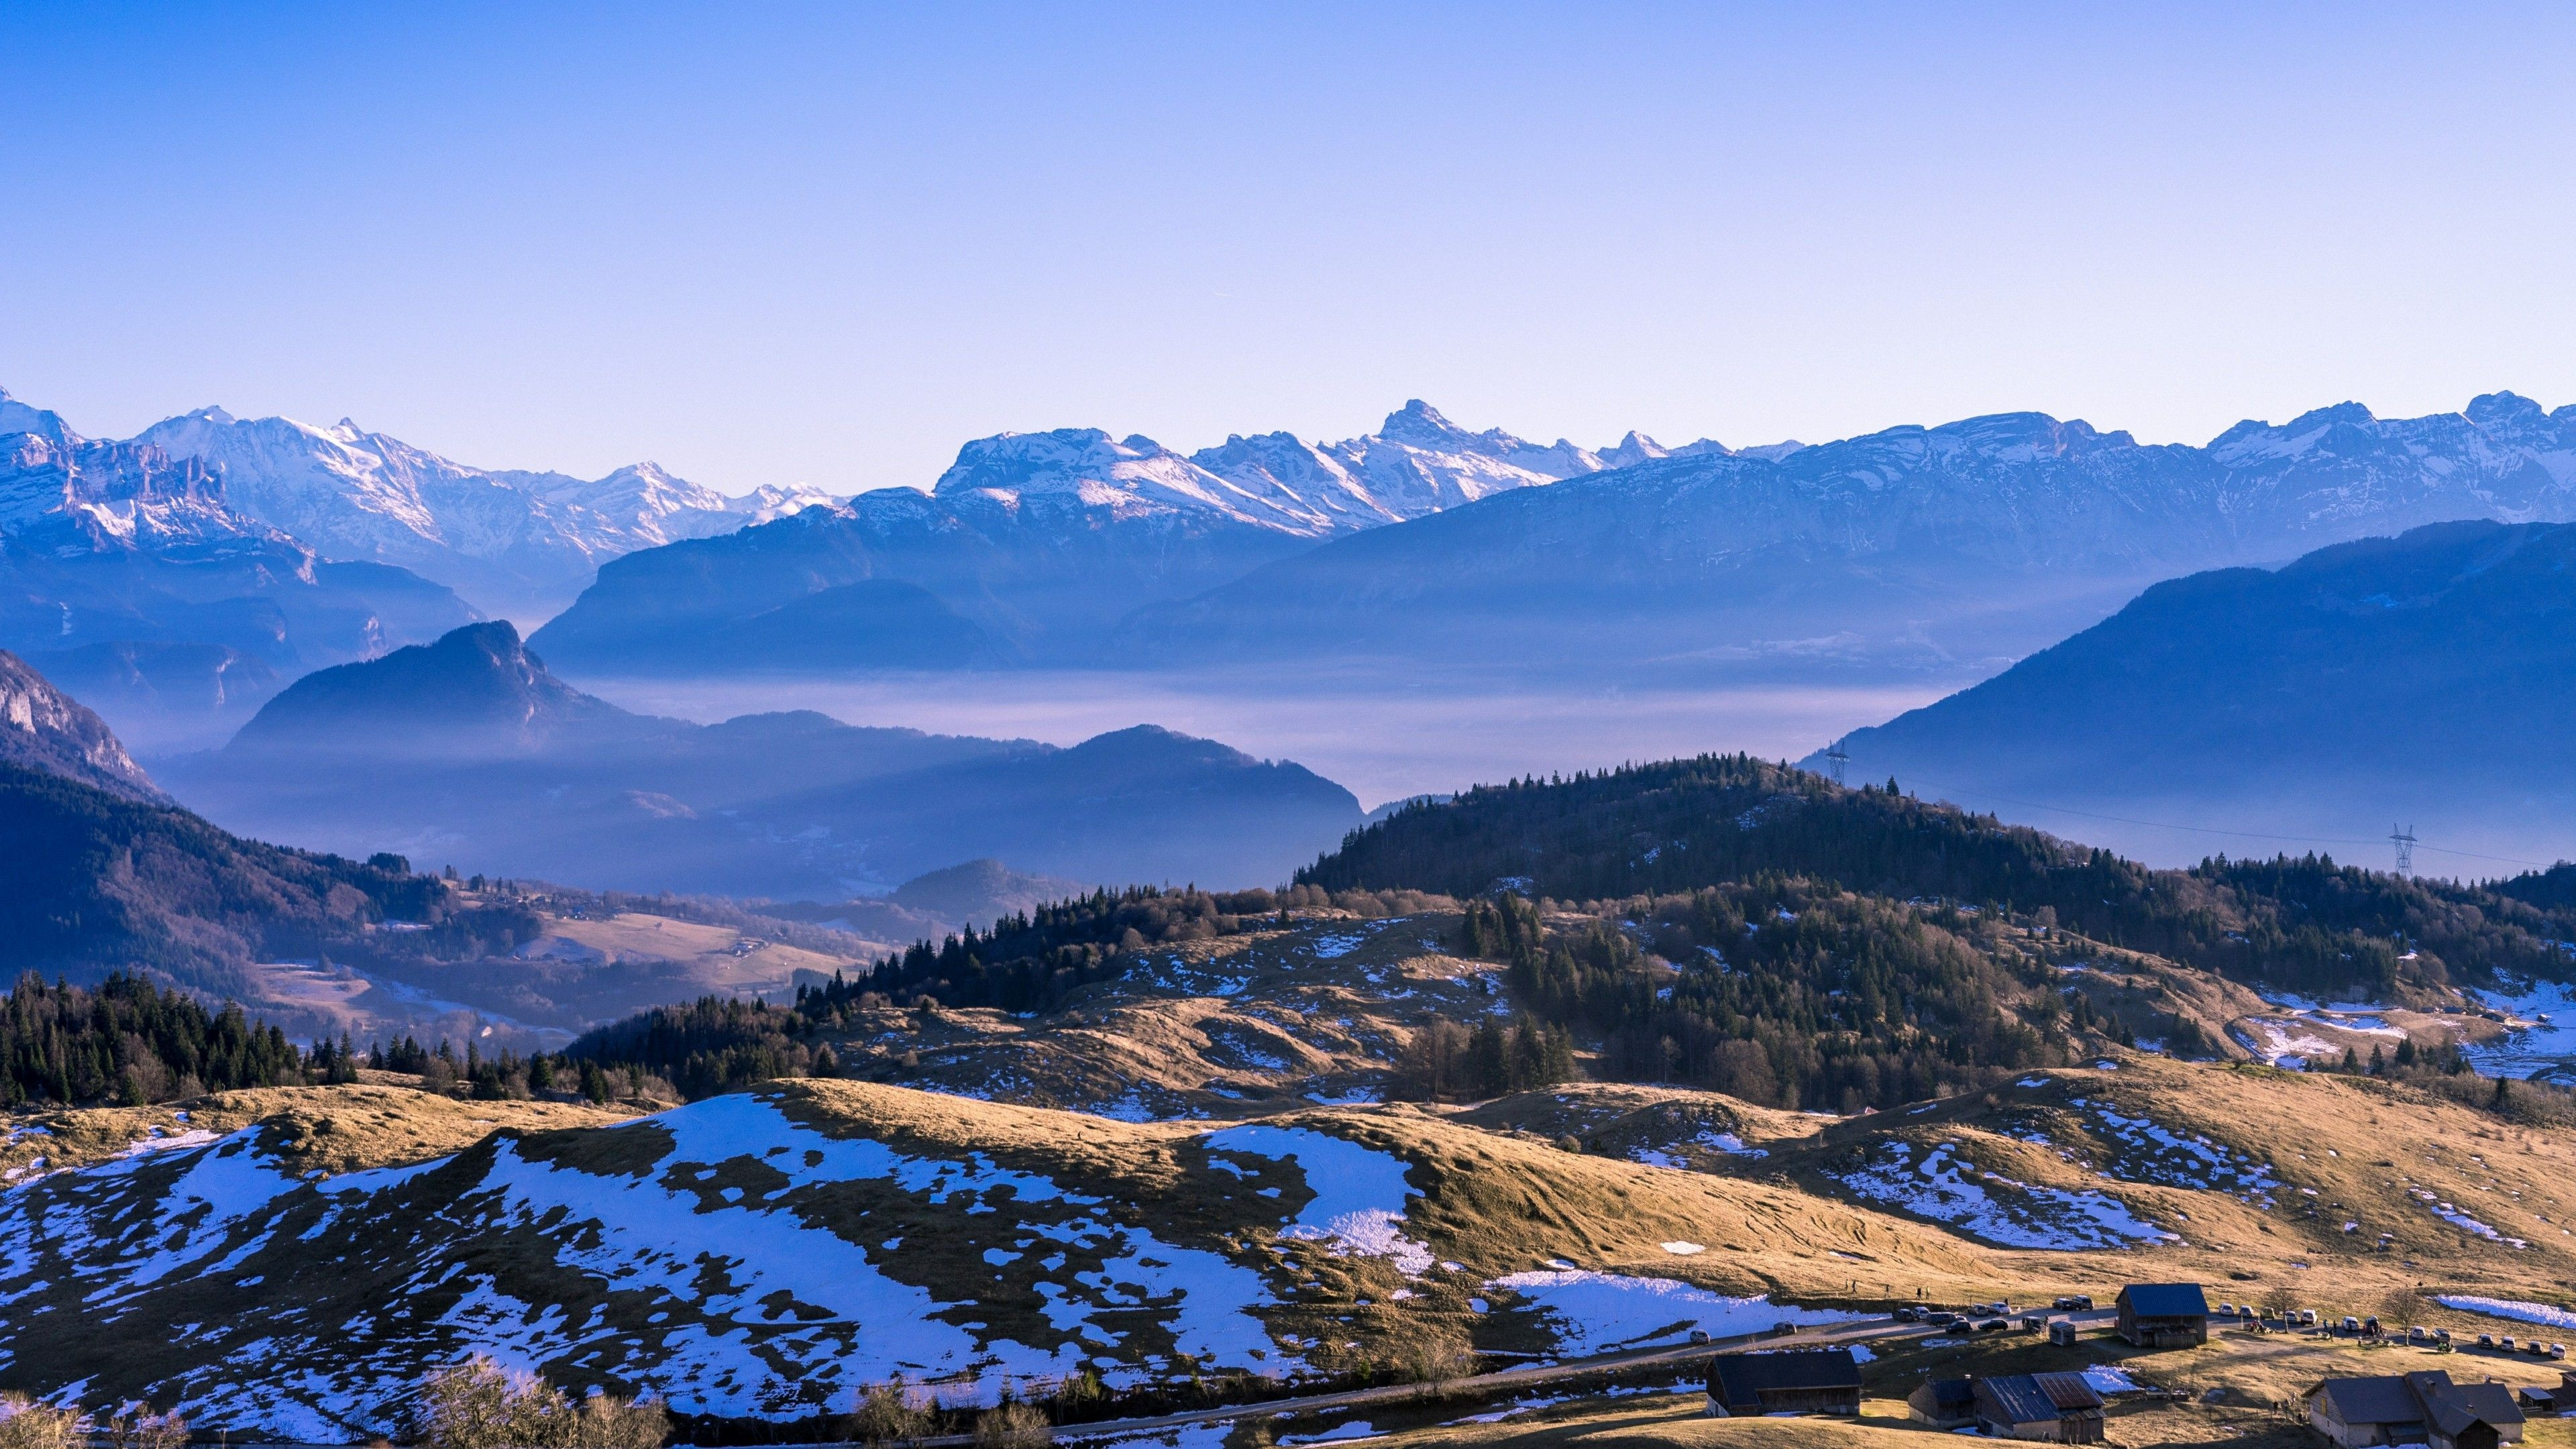 Hill station Wallpapers | Wallpaper Studio 10 | Tens of thousands ...